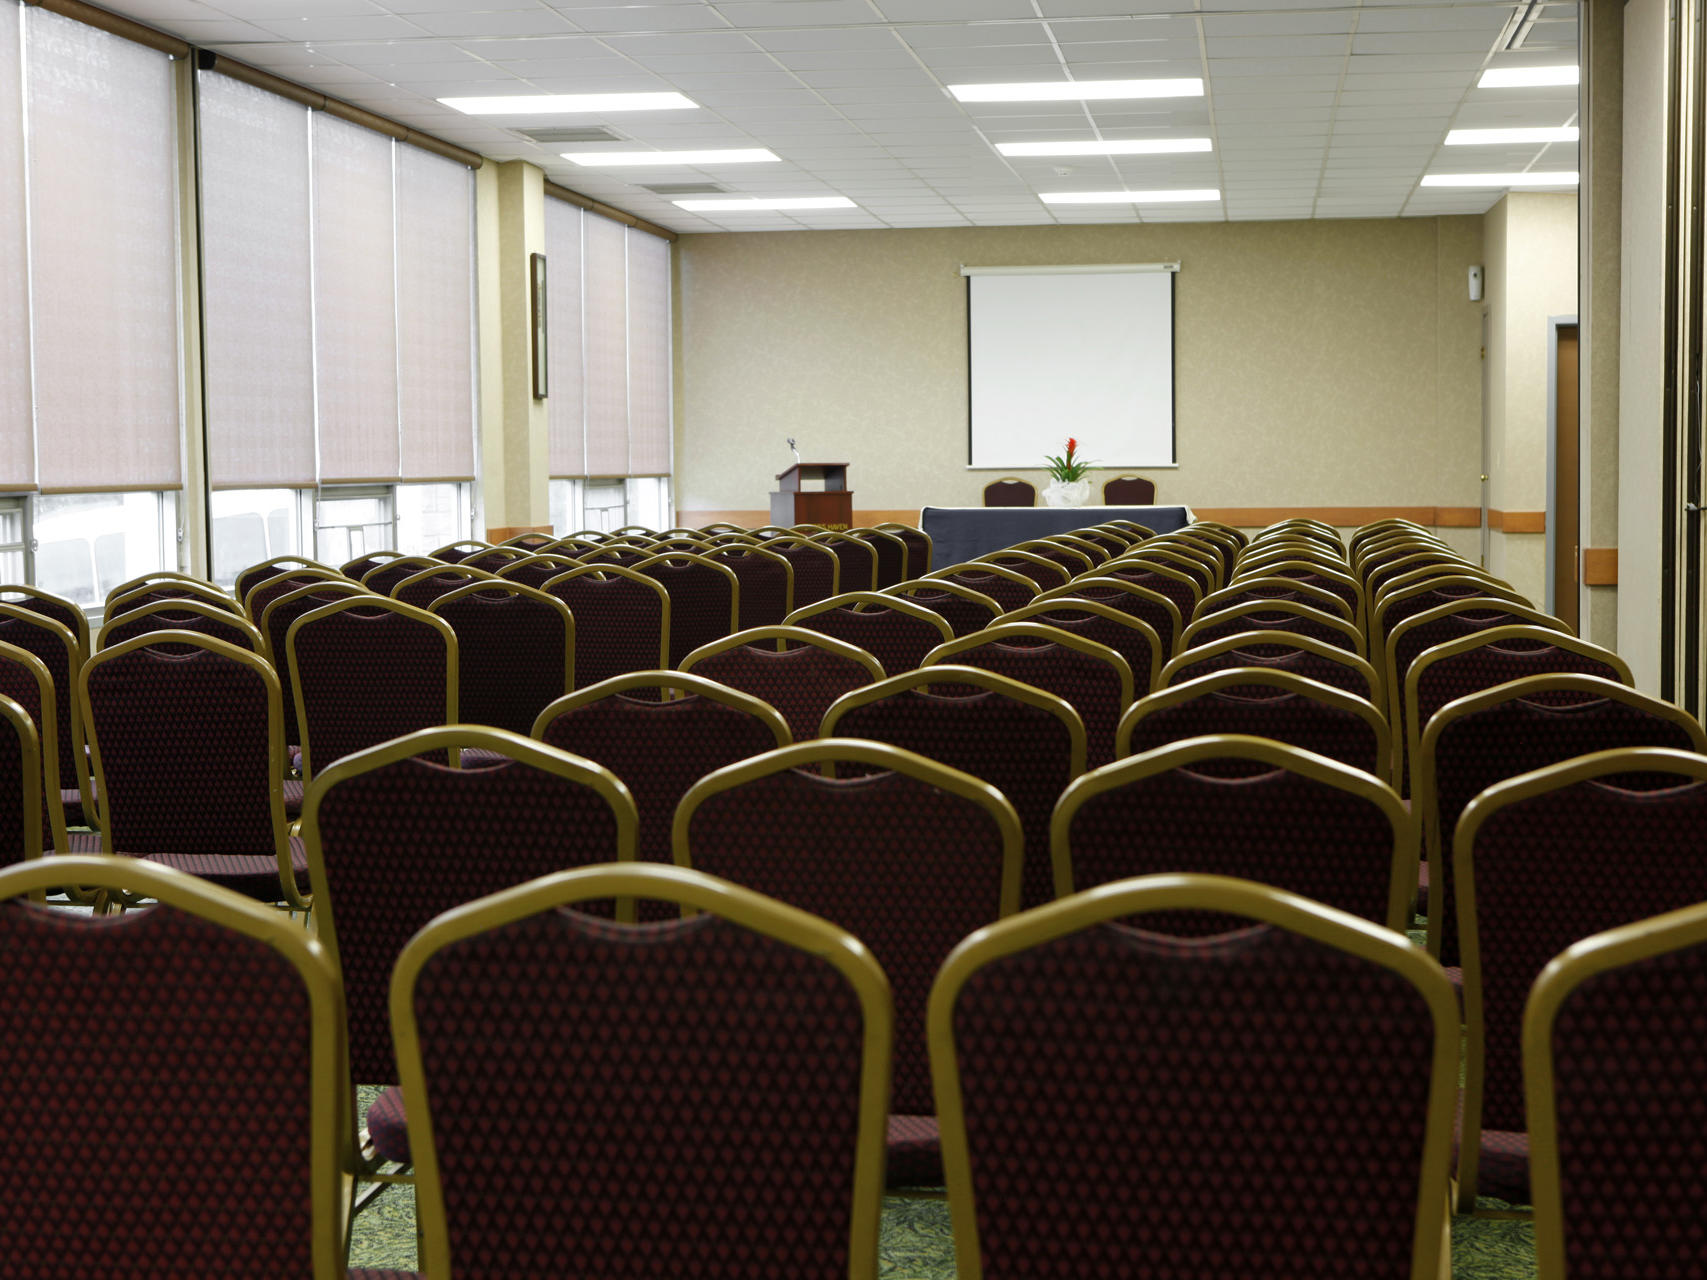 Chairs set up for a conference